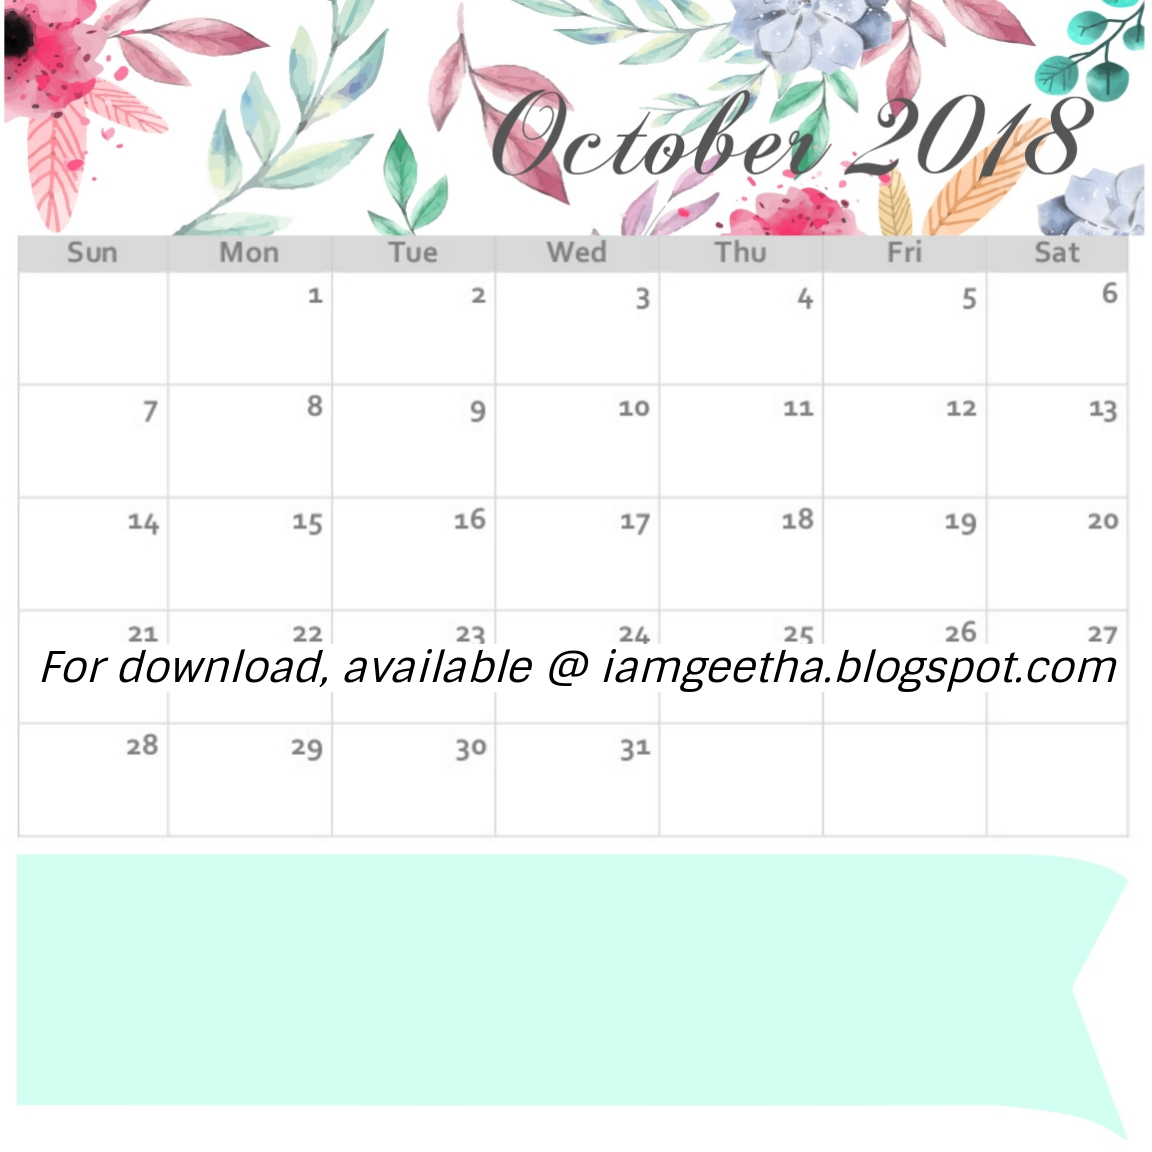 october 2018 calendar in feathers and arrows